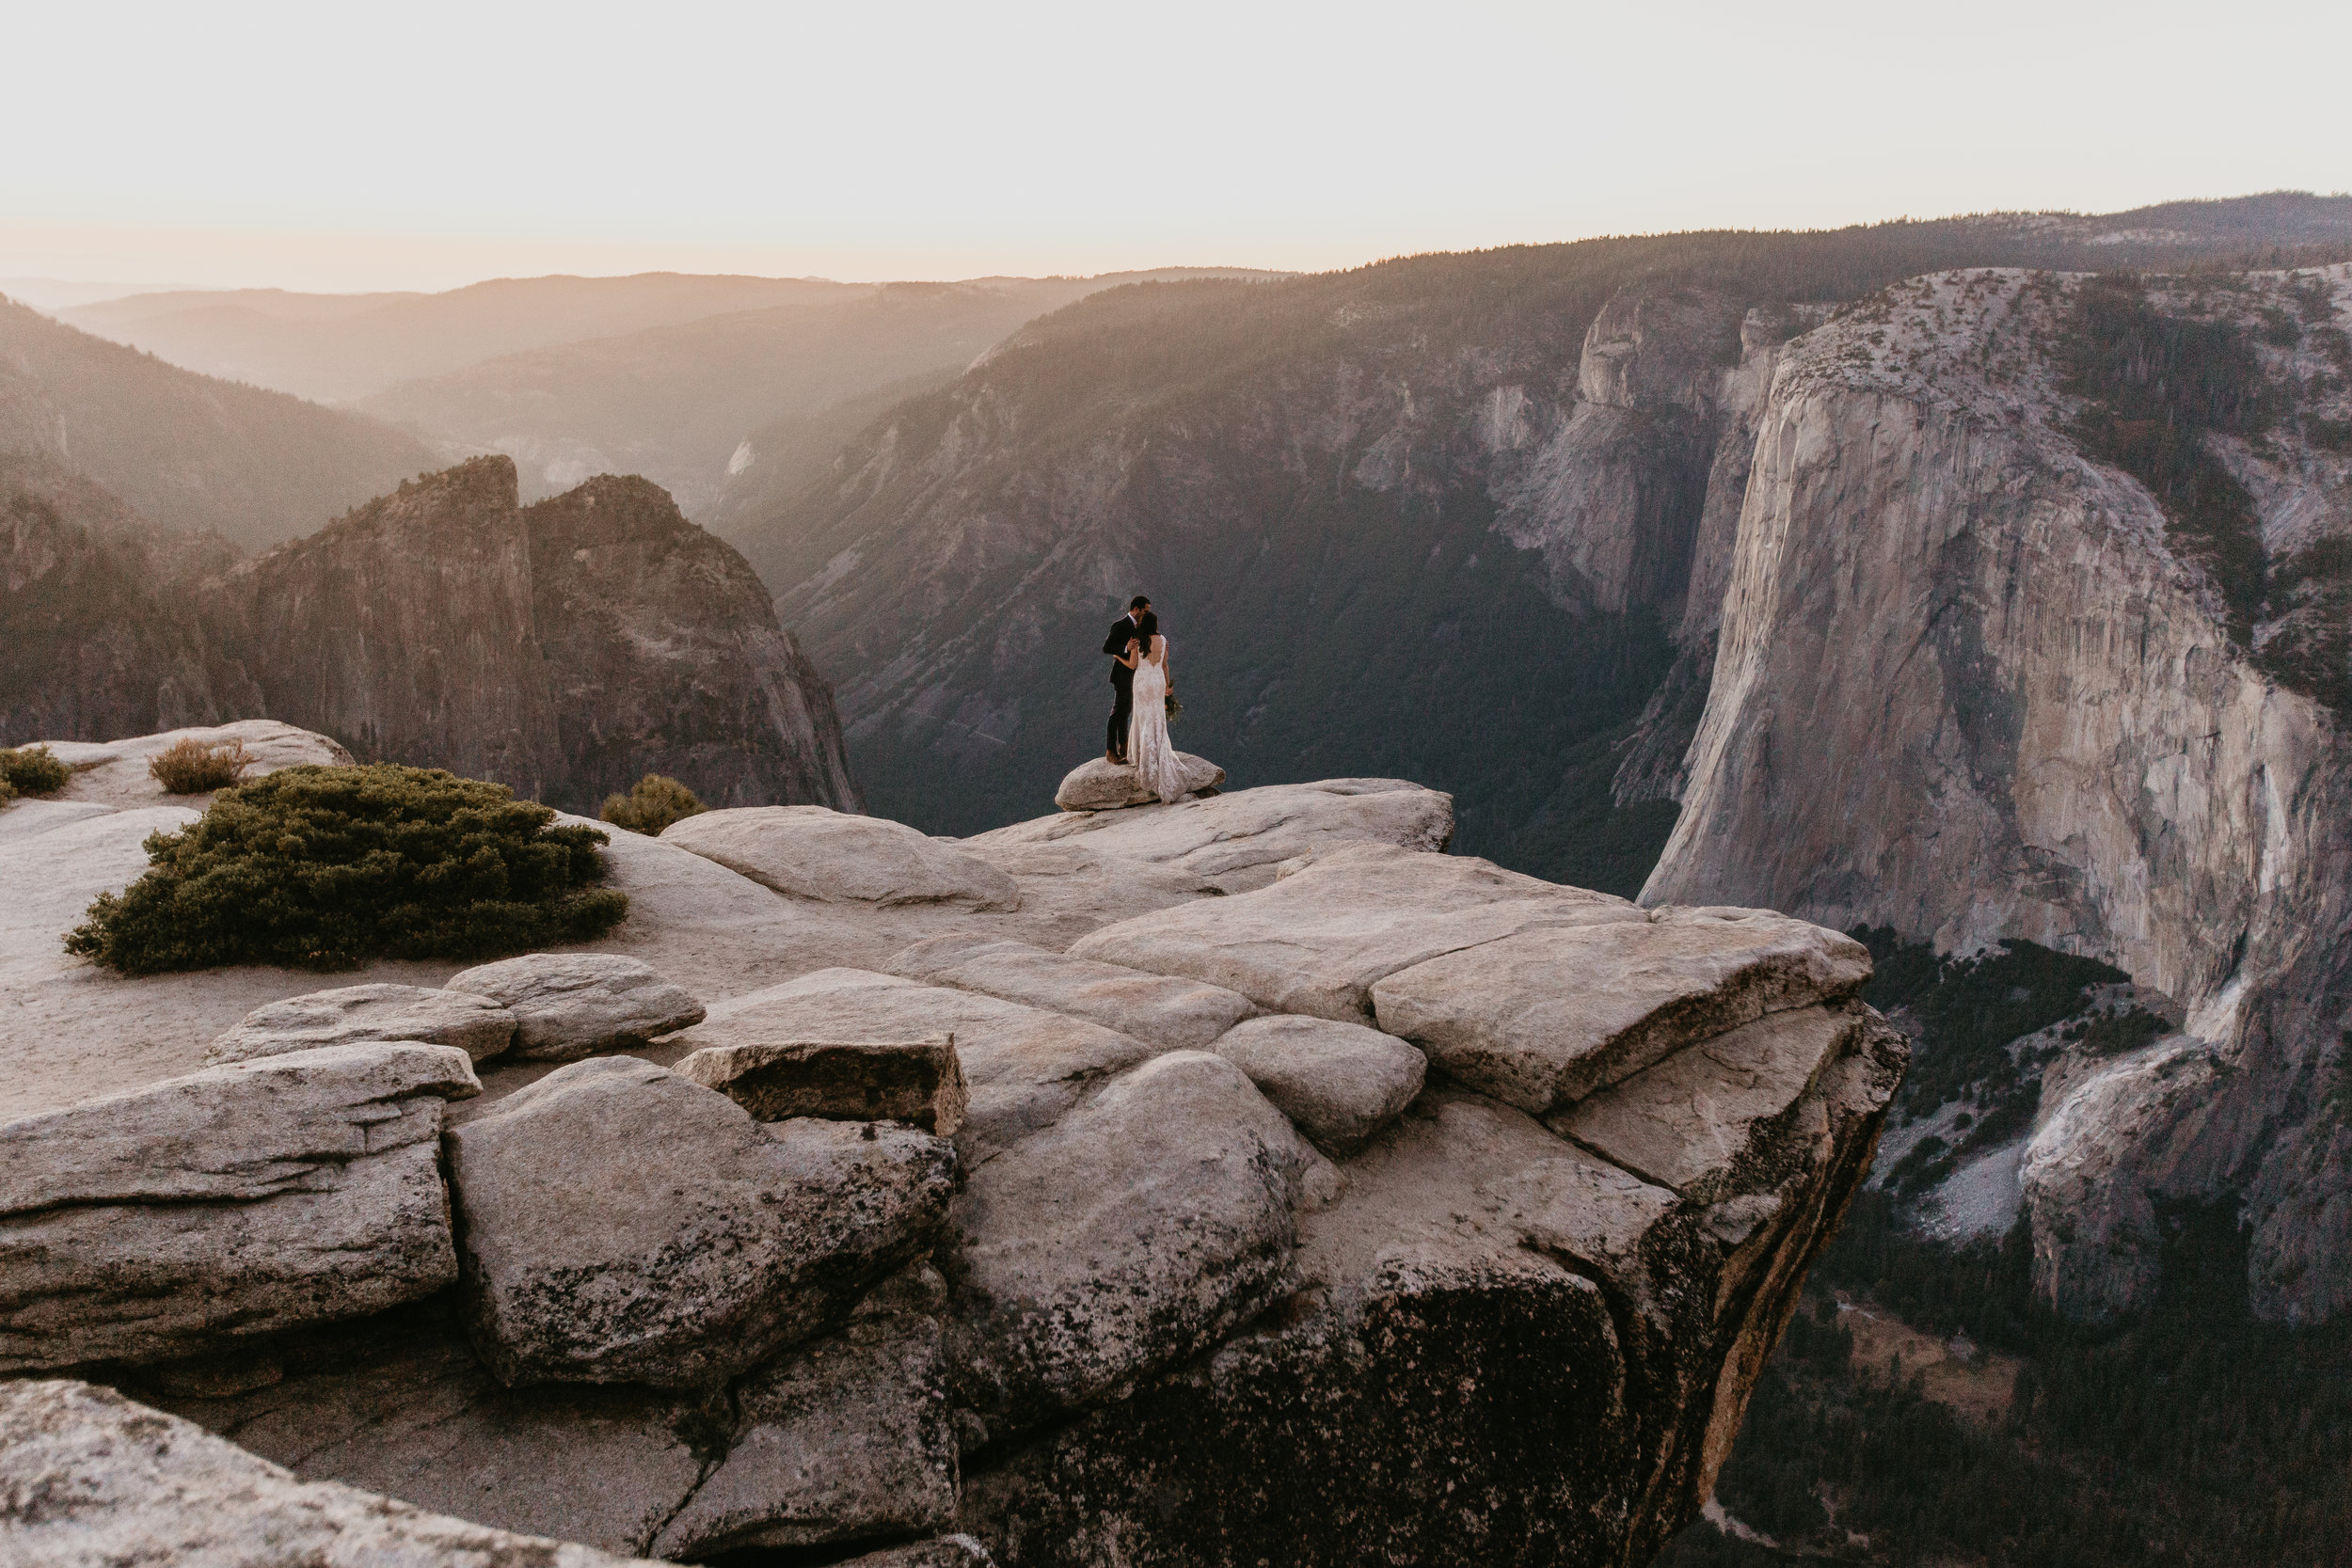 nicole-daacke-photography-intimate-elopement-wedding-yosemite-national-park-california-taft-point-sunset-photos-yosemite-valley-tunnel-view-first-look-sunrise-golden-granite-hiking-adventure-wedding-adventurous-elopement-photographer-124.jpg